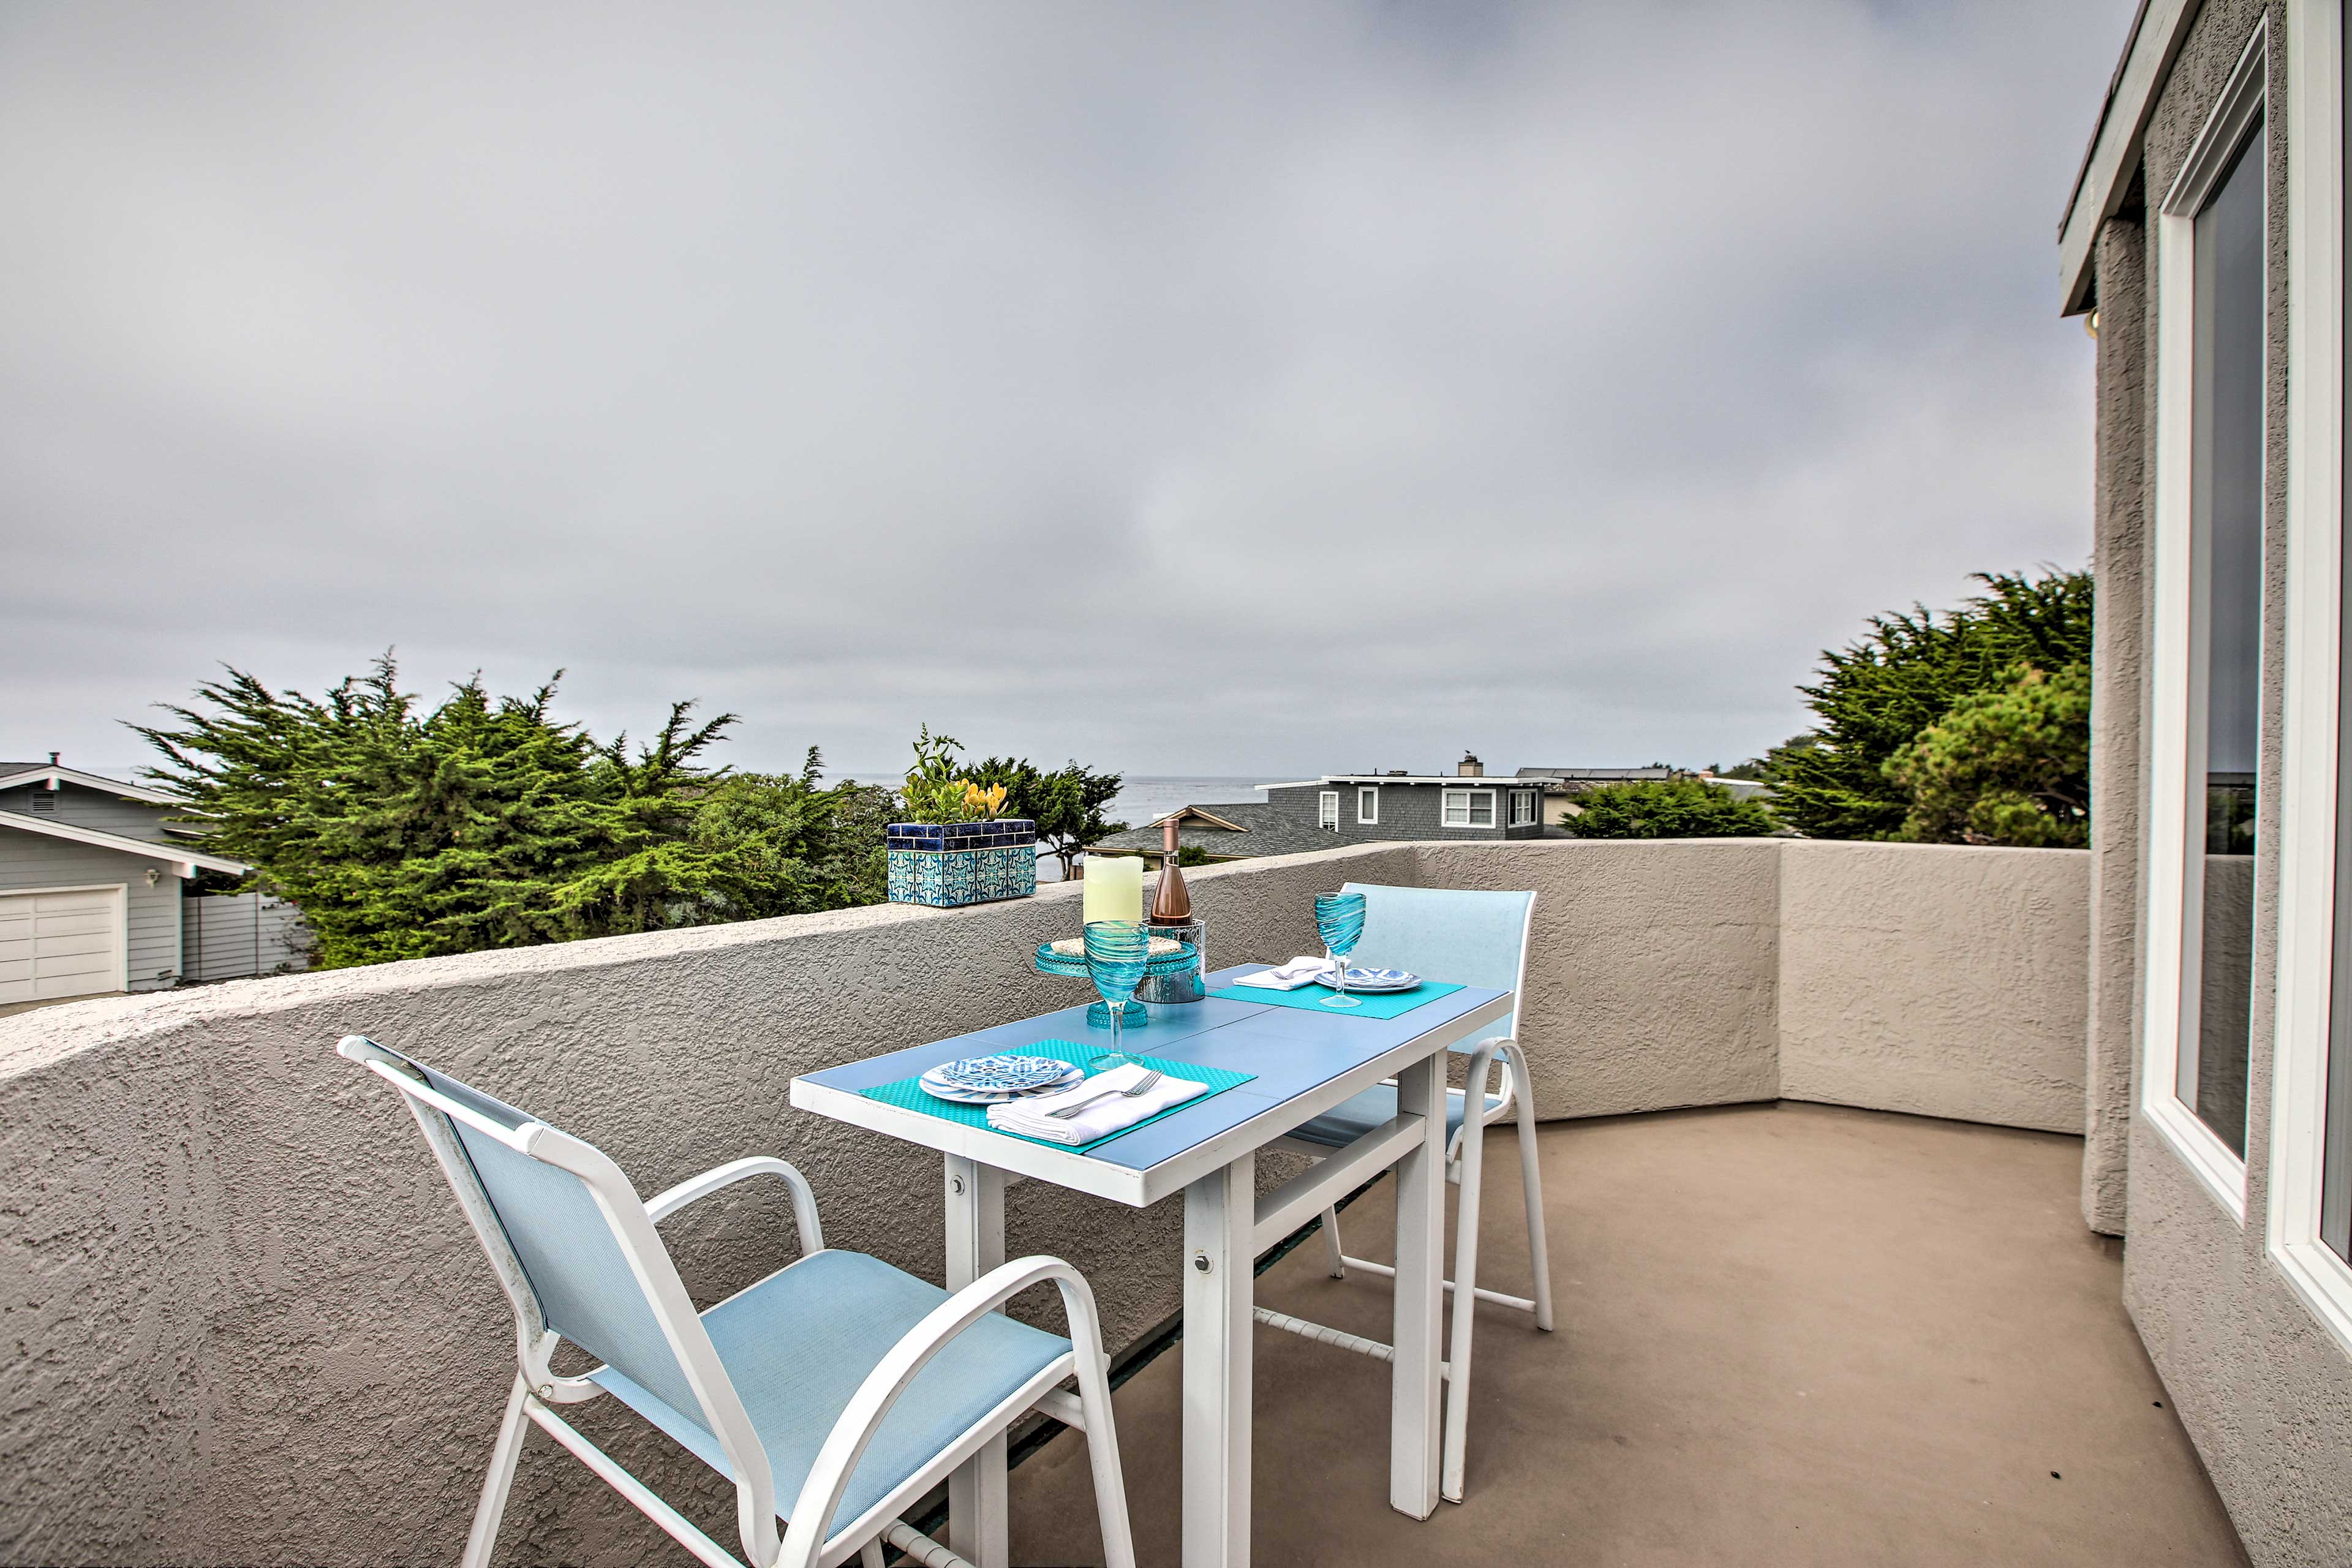 The home can sleep up to 6 guests and features stunning ocean views.